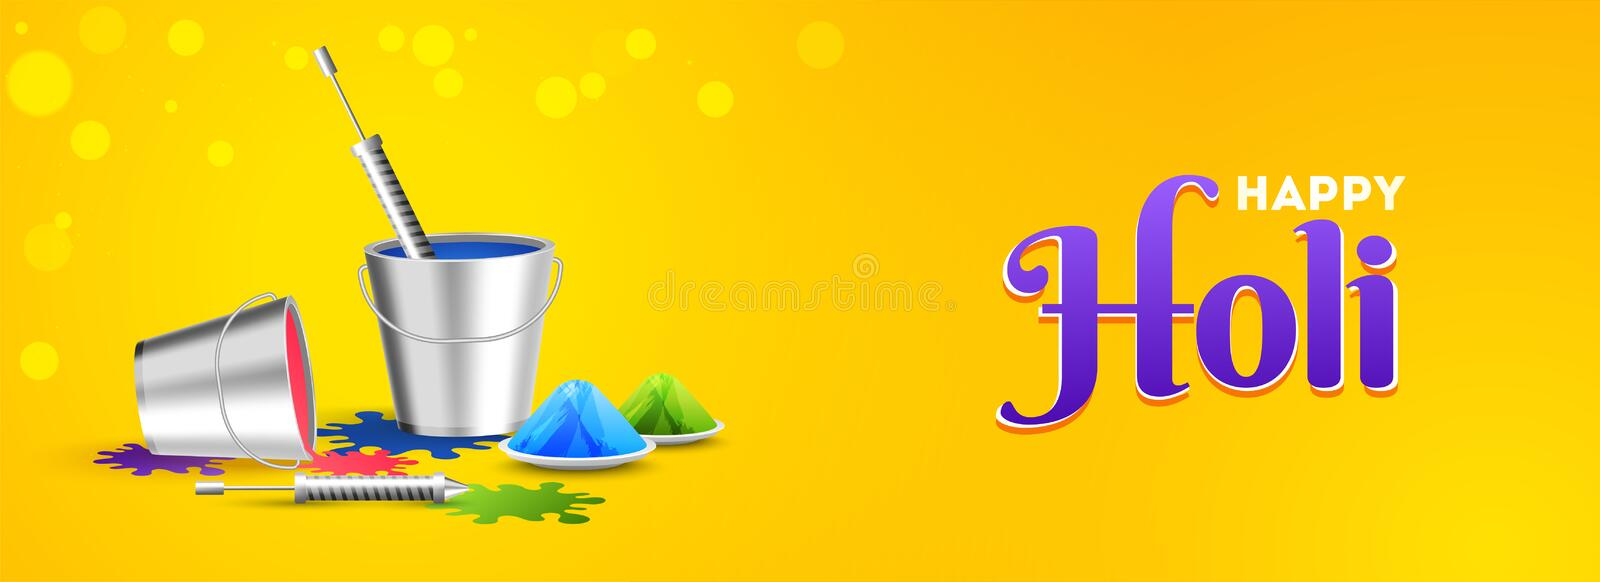 Glossy yellow header or banner design with festival elements for Happy Holi festival royalty free illustration